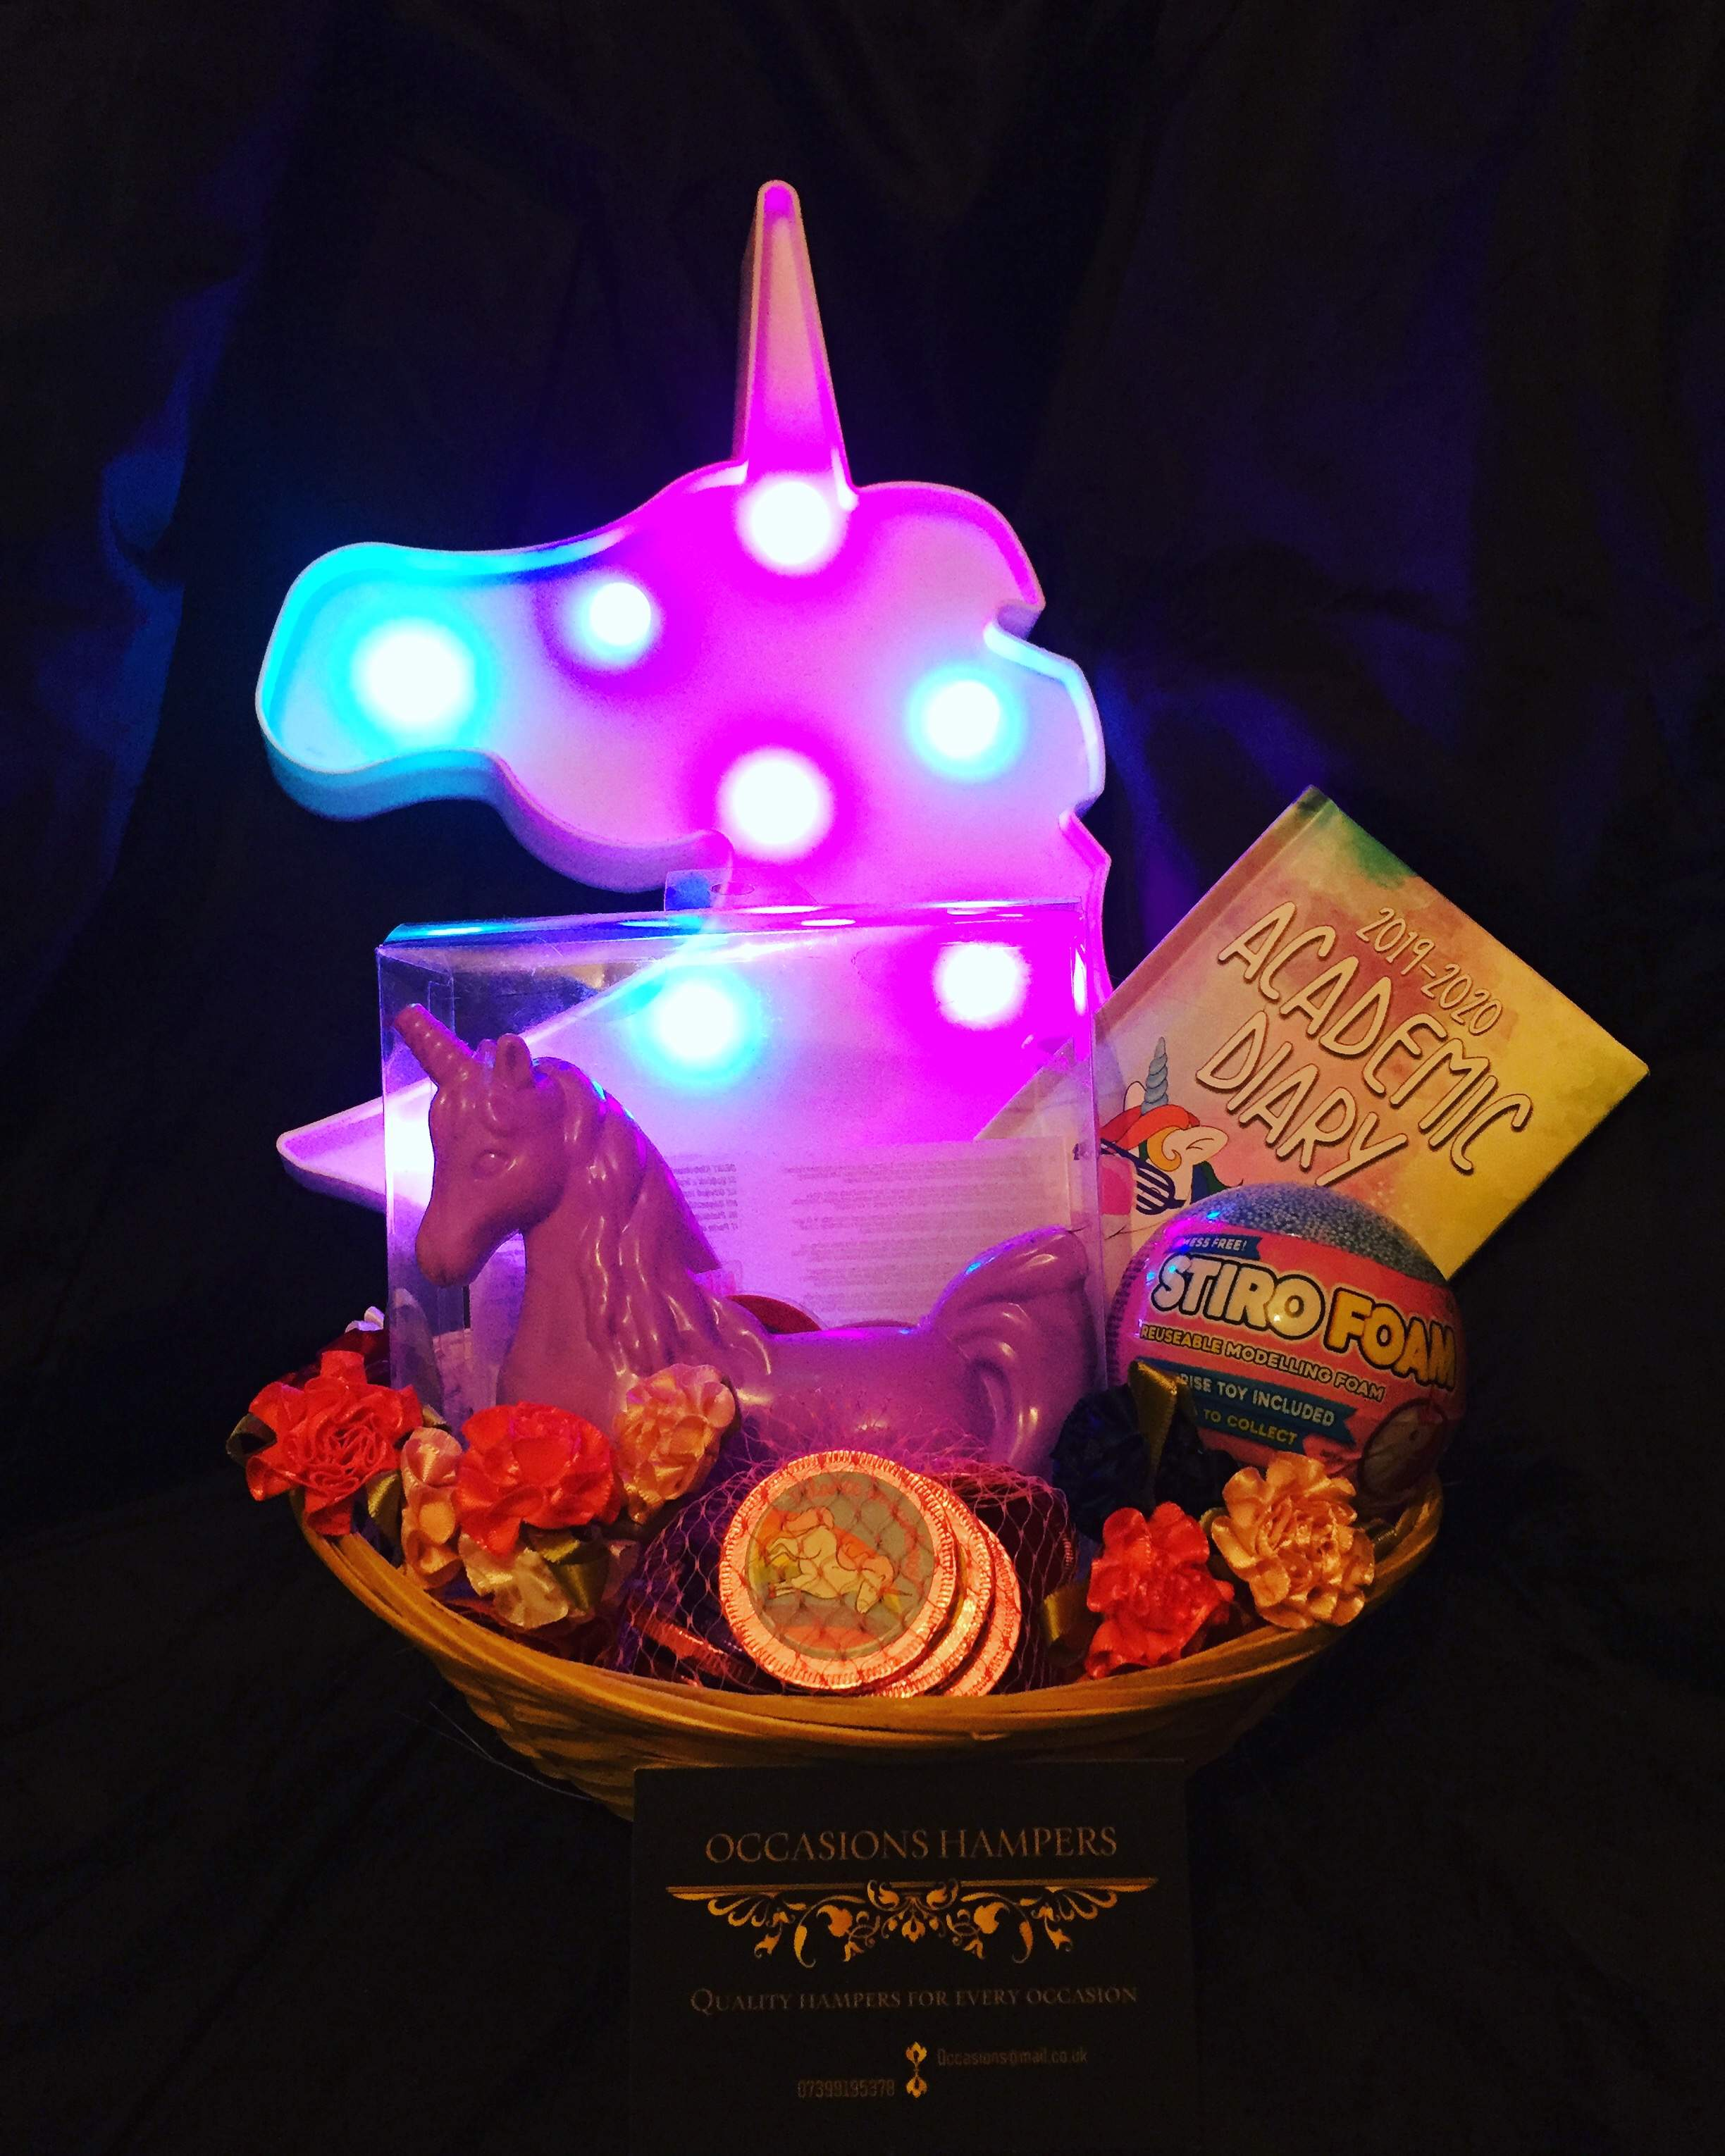 unique themed gift baskets from £20 each